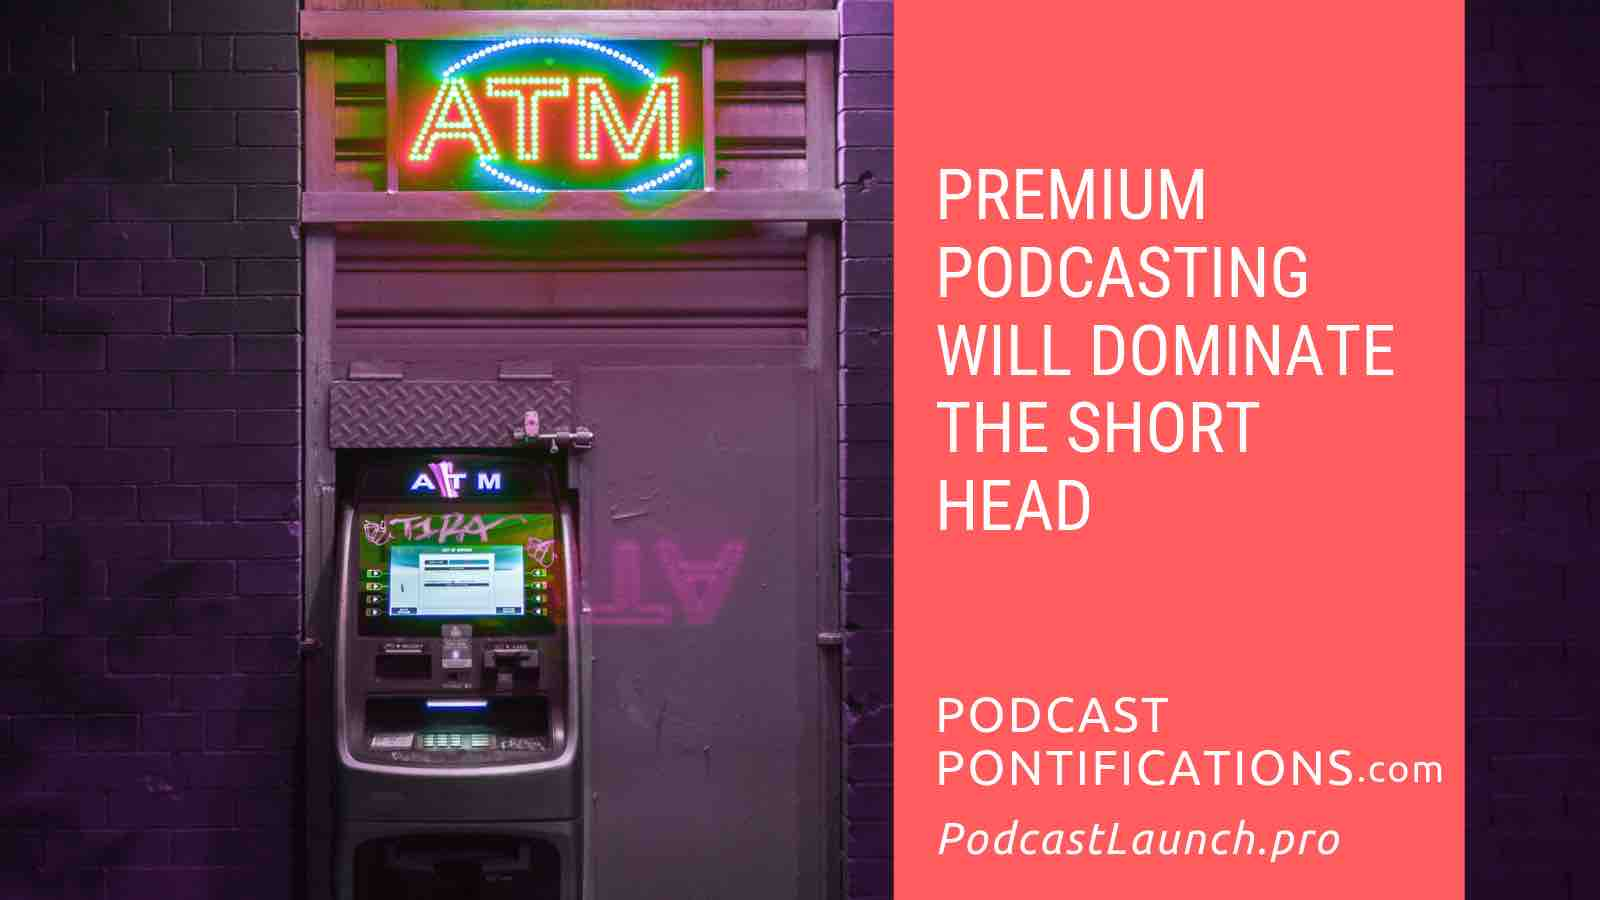 Premium Podcasting Will Soon Dominate The Short Head